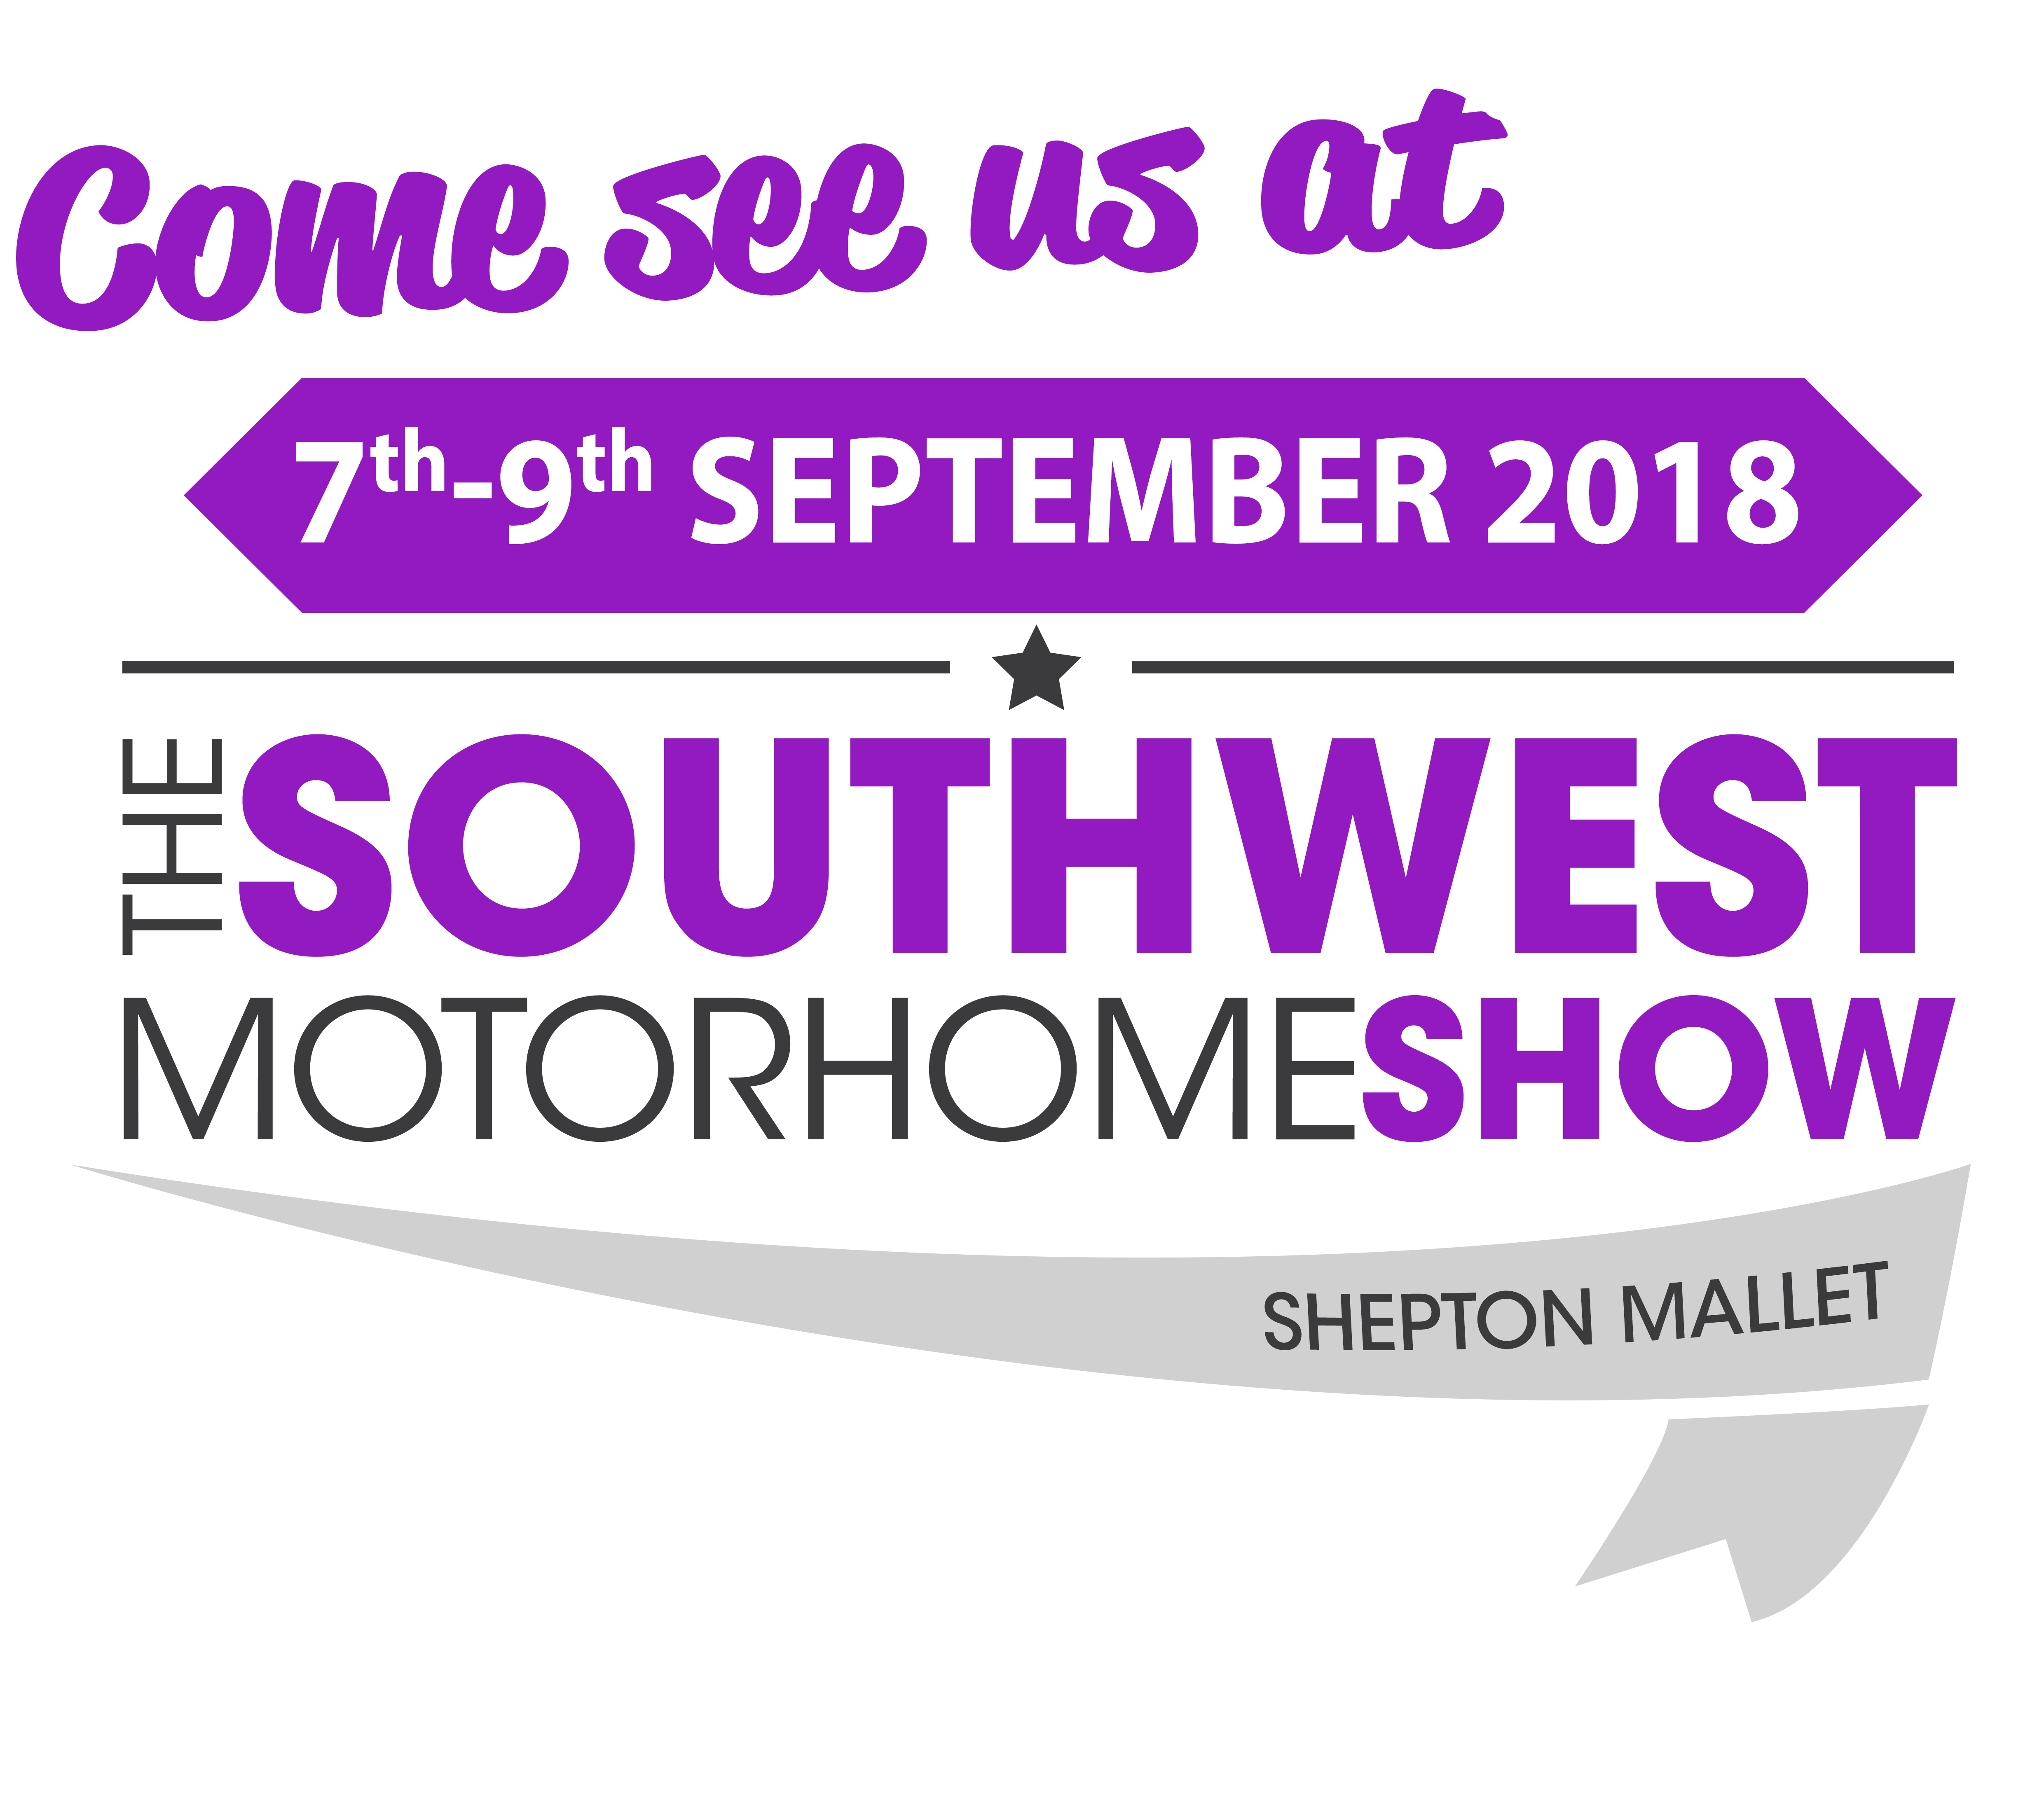 Next Show - Shepton Mallet 7th - 9th September 2018